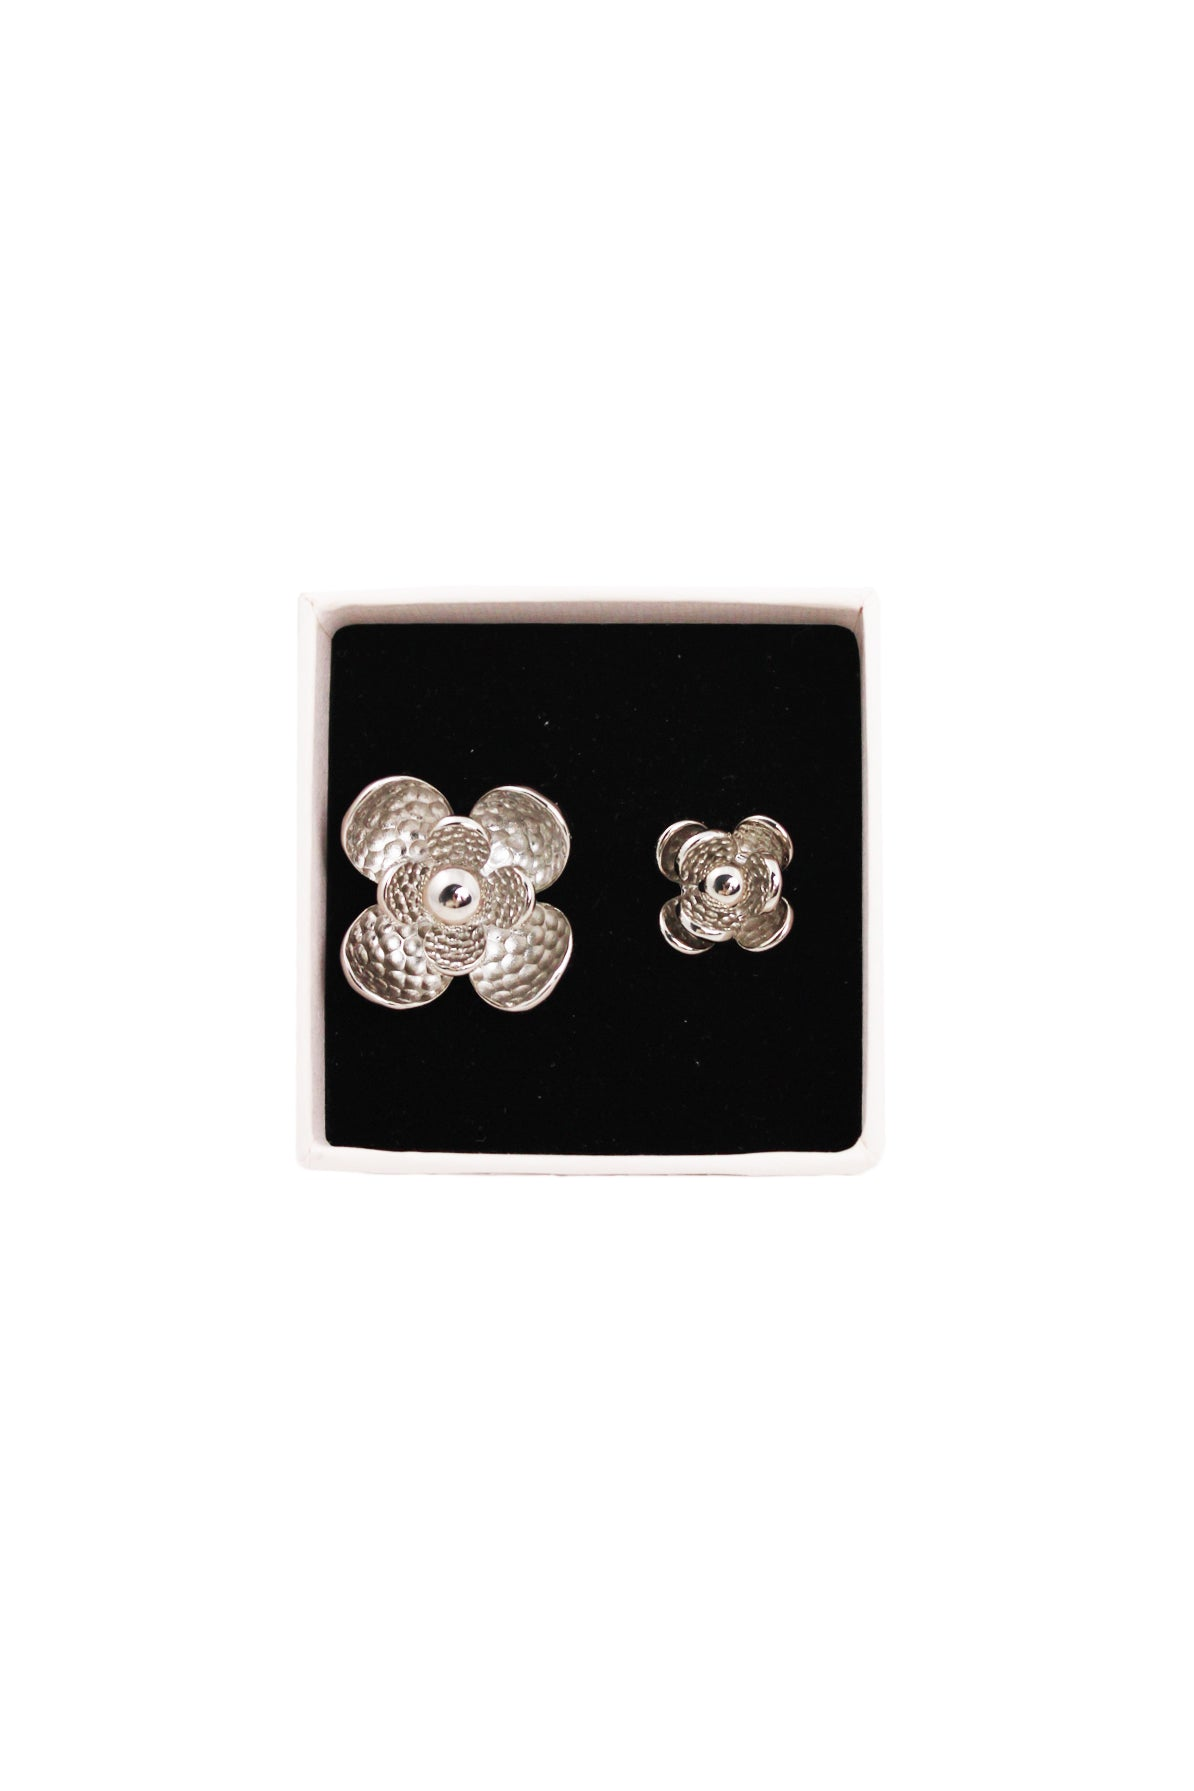 sergio rossi silver floral double ring box.